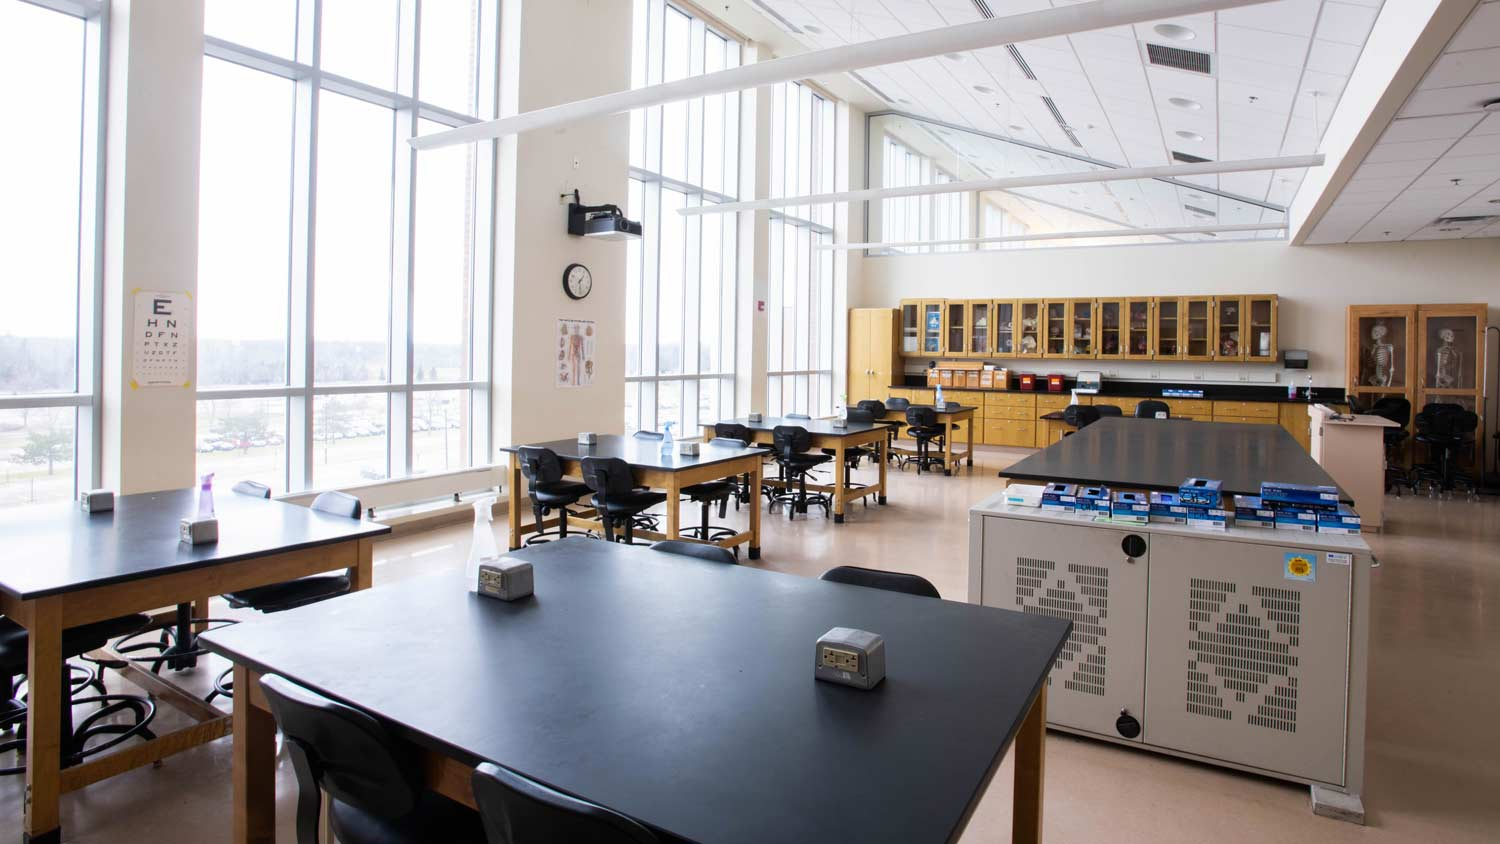 Lab with large open windows and a lot of tables